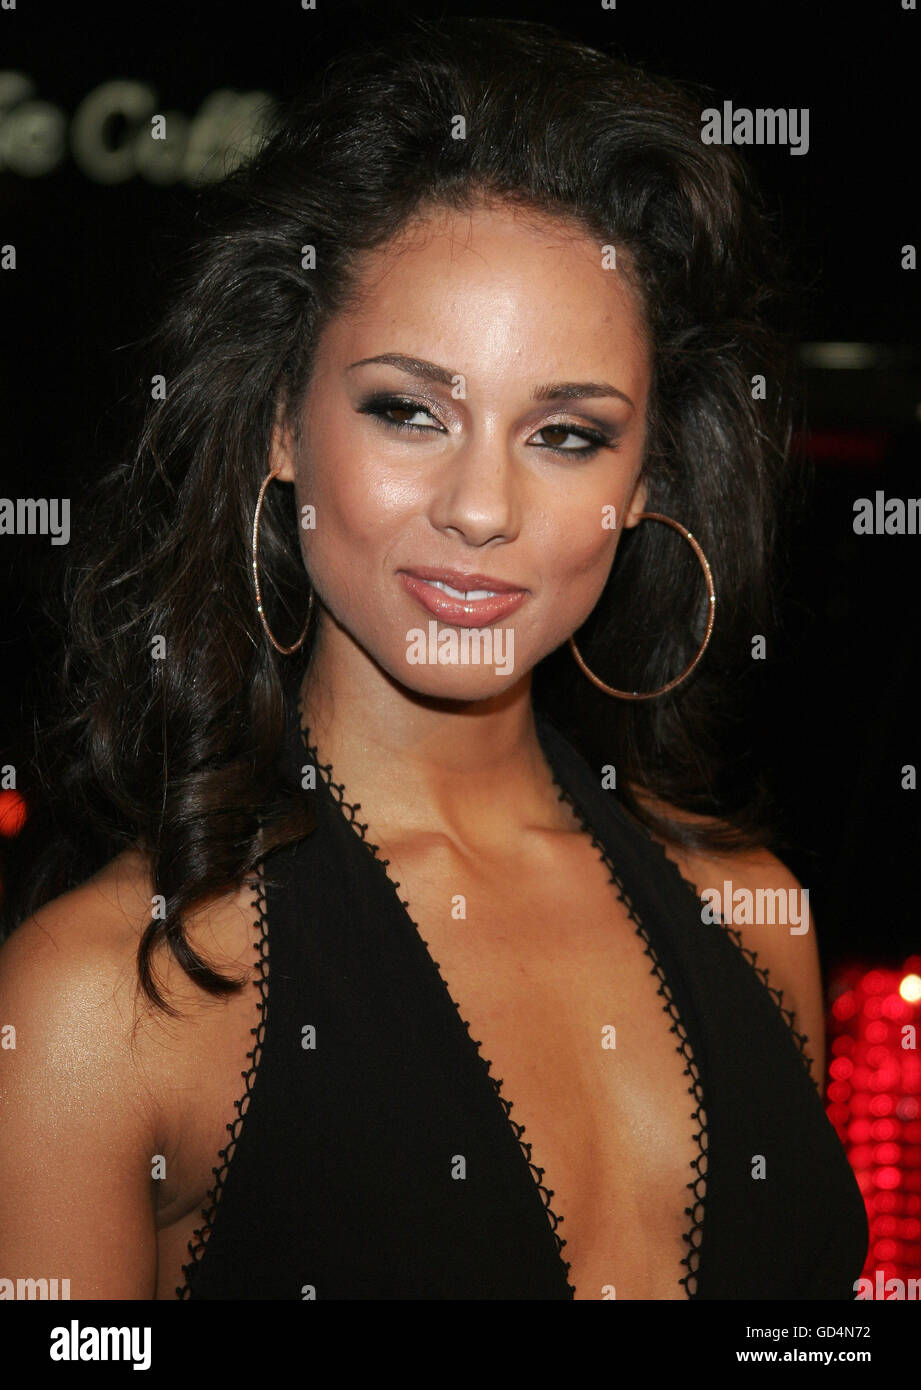 Alicia Keys at the LA premiere of 'Smokin' Aces' held at the Grauman's Chinese Theatre in Hollywood, - Stock Image